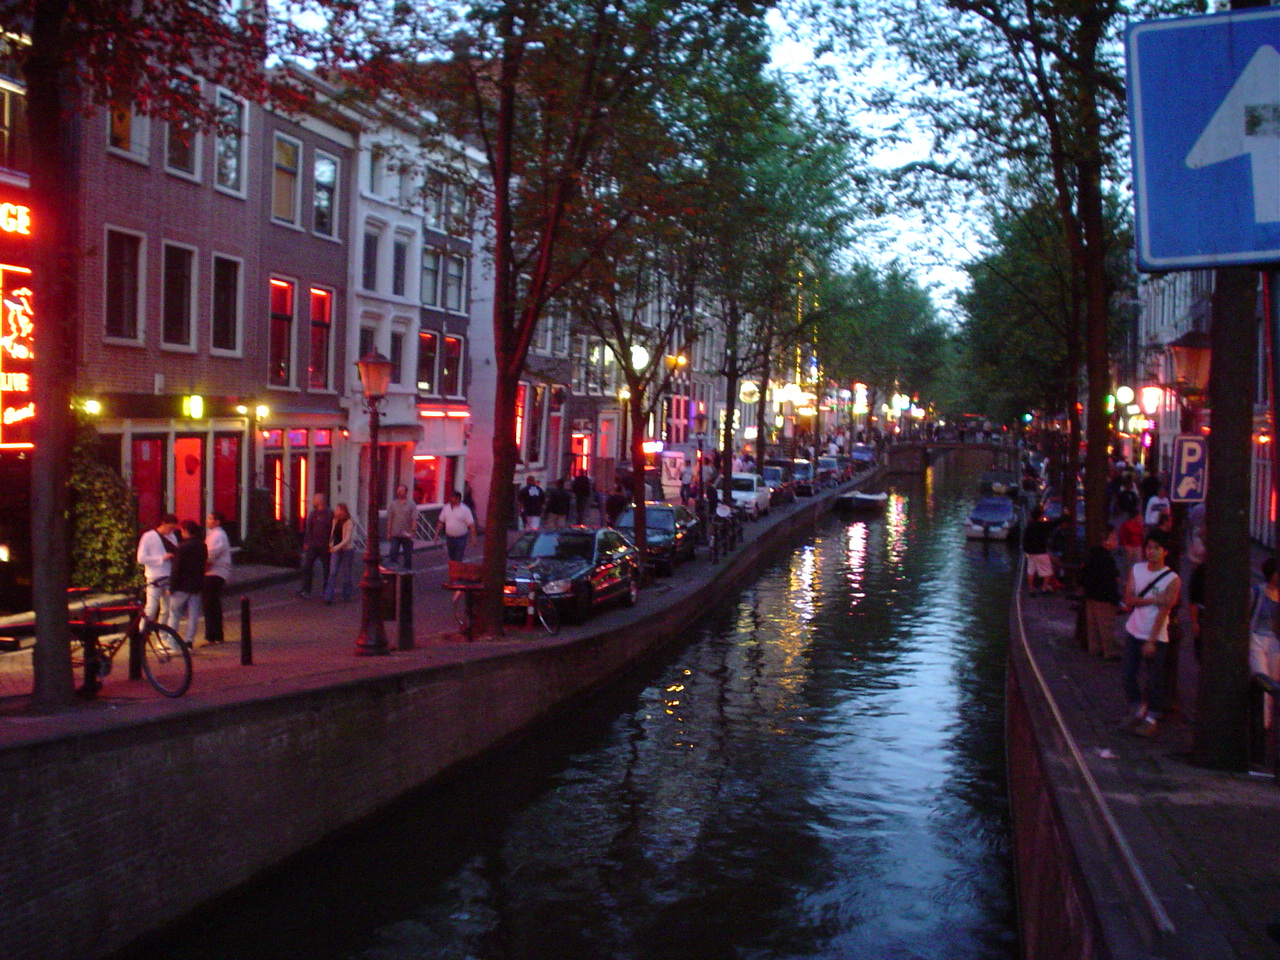 http://upload.wikimedia.org/wikipedia/commons/2/27/Amsterdam_red_light_district_24-7-2003.JPG